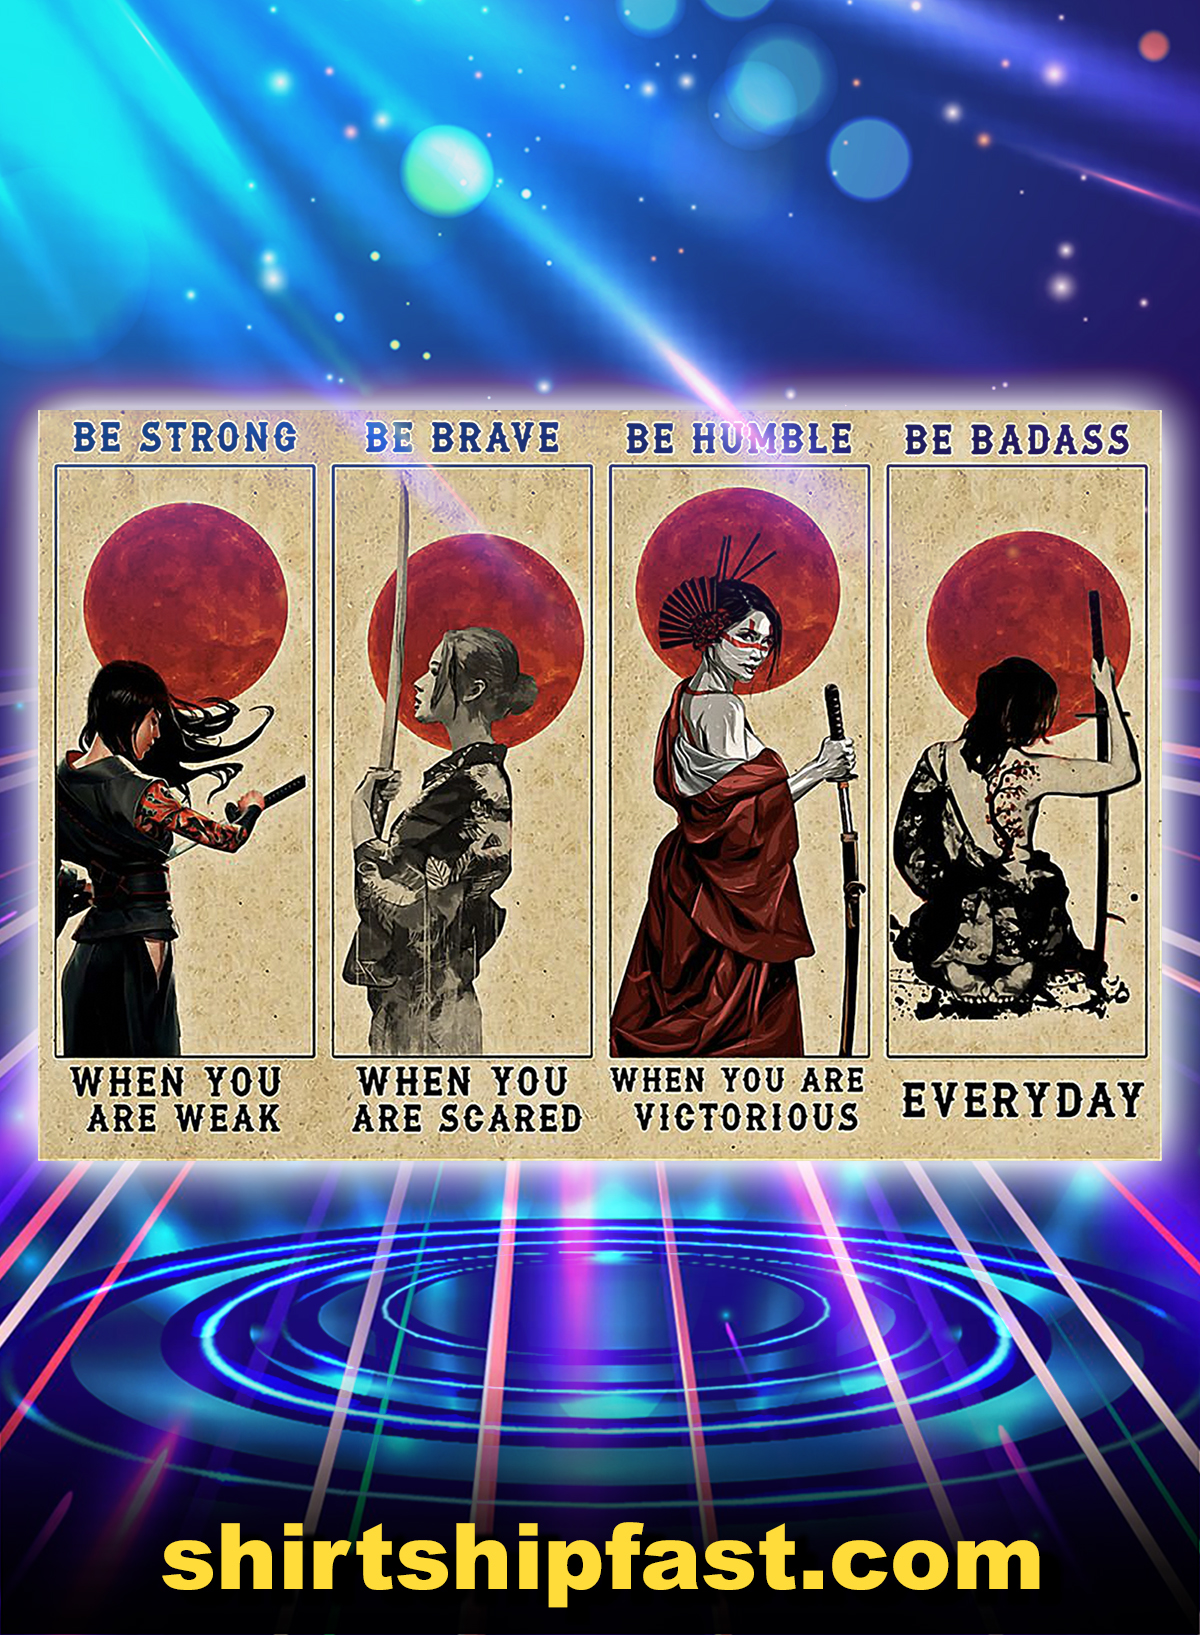 Female samurai be strong be brave be humble be badass poster